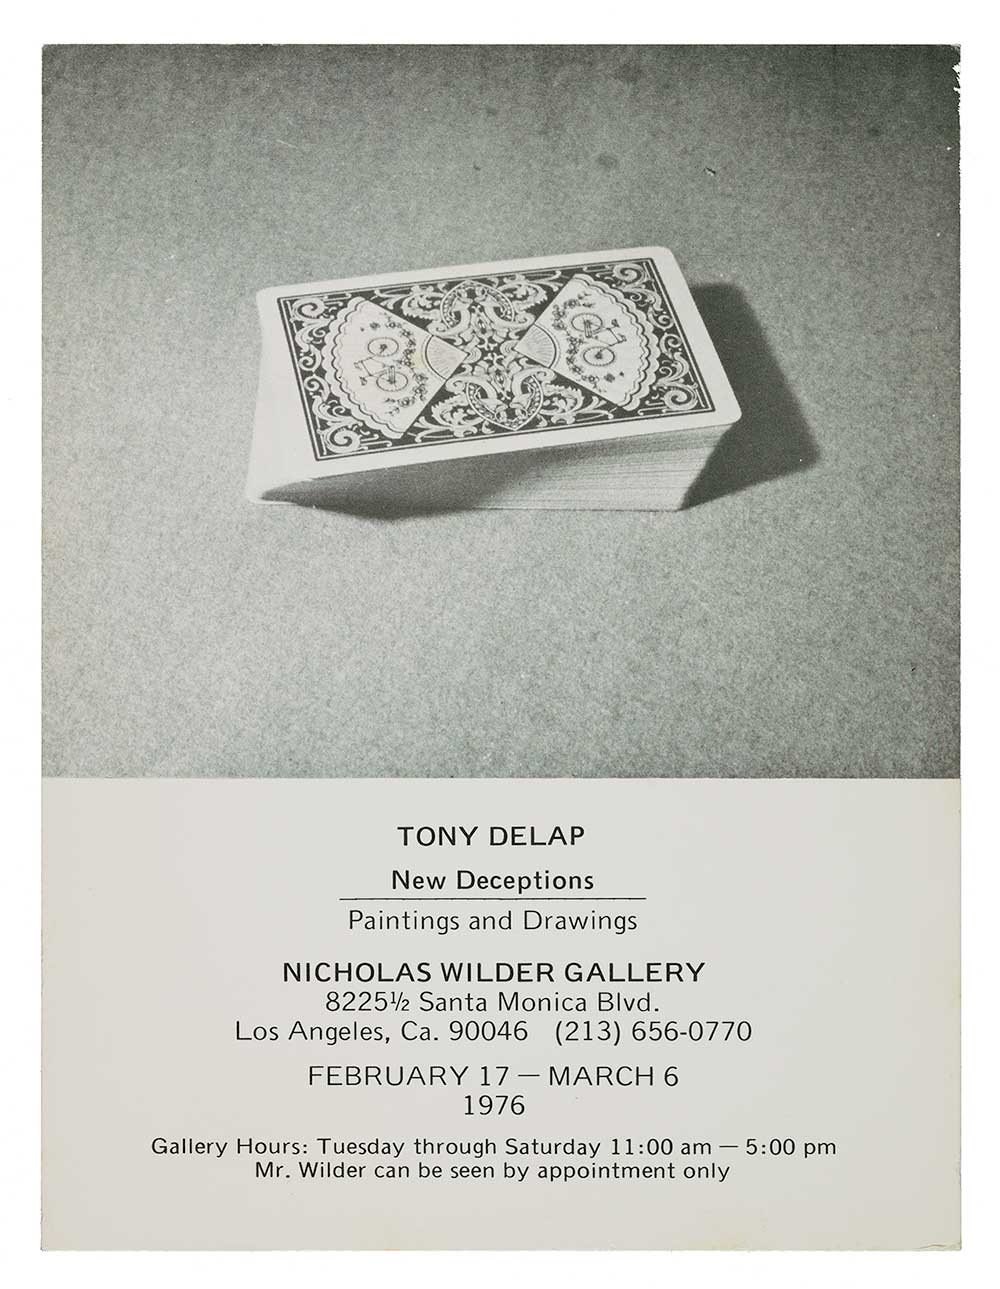 Announcement for Tony DeLap exhibit, New Deceptions